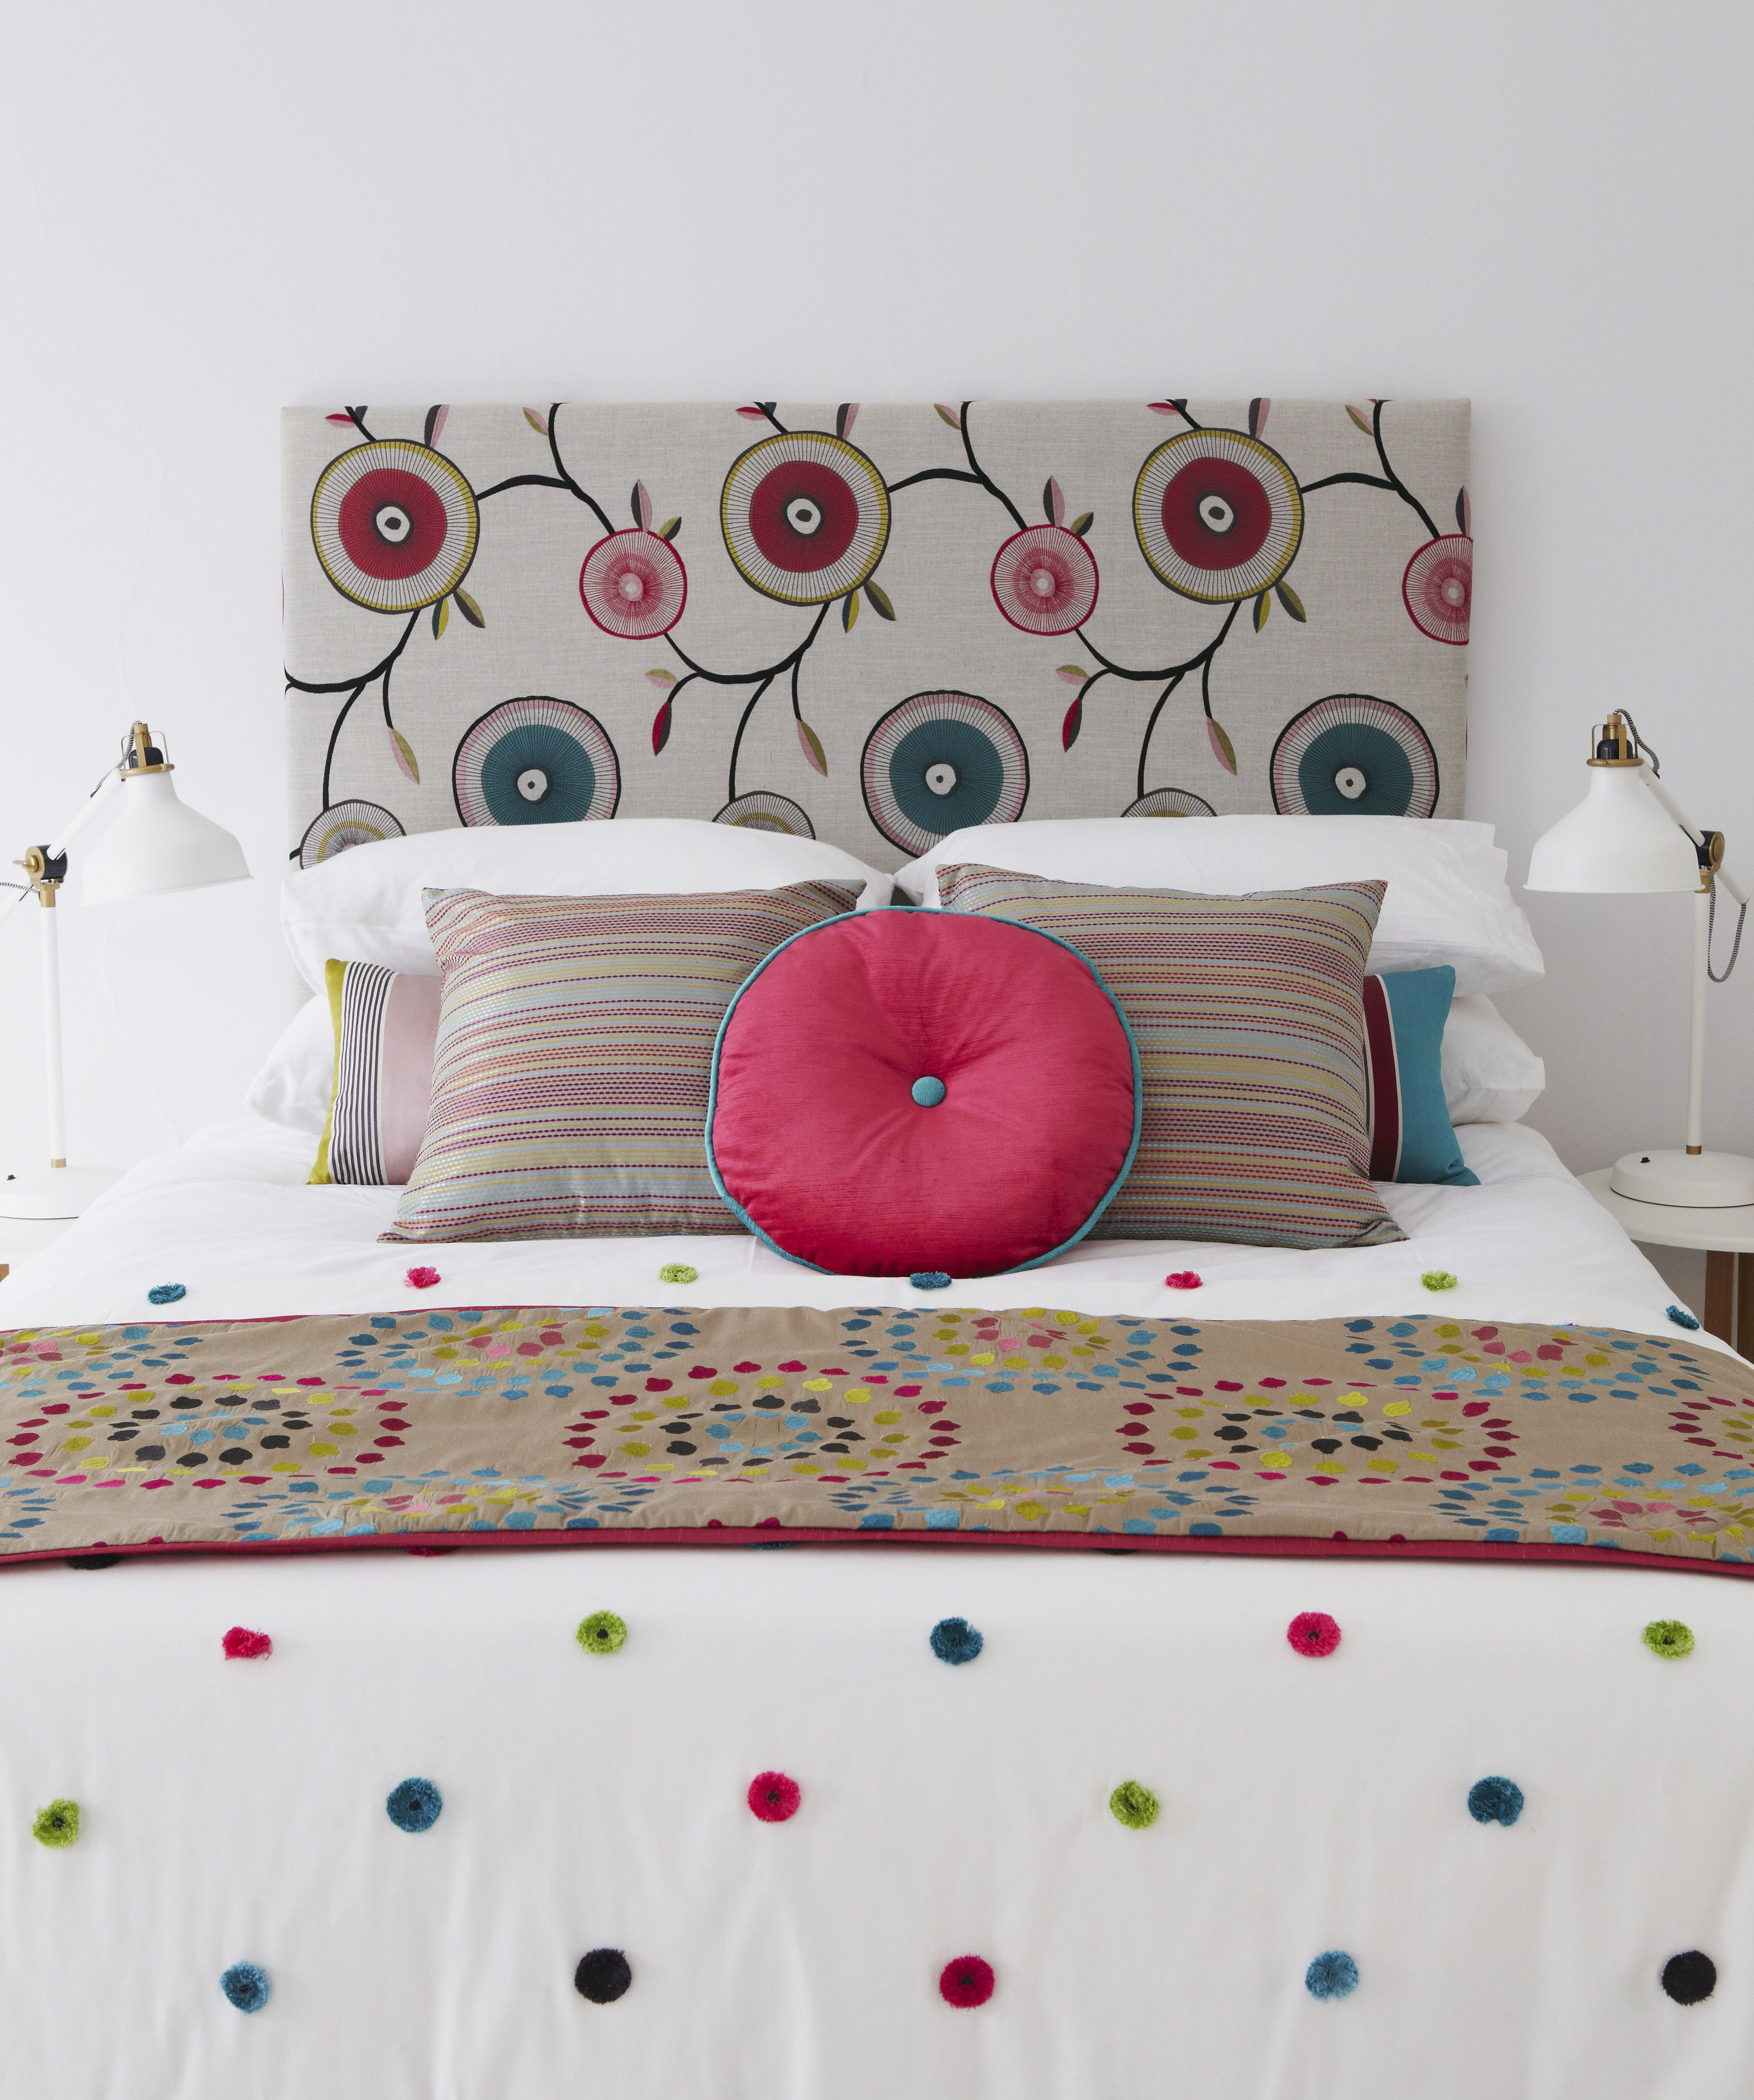 How to Choose Accents to Decorate a Bedroom